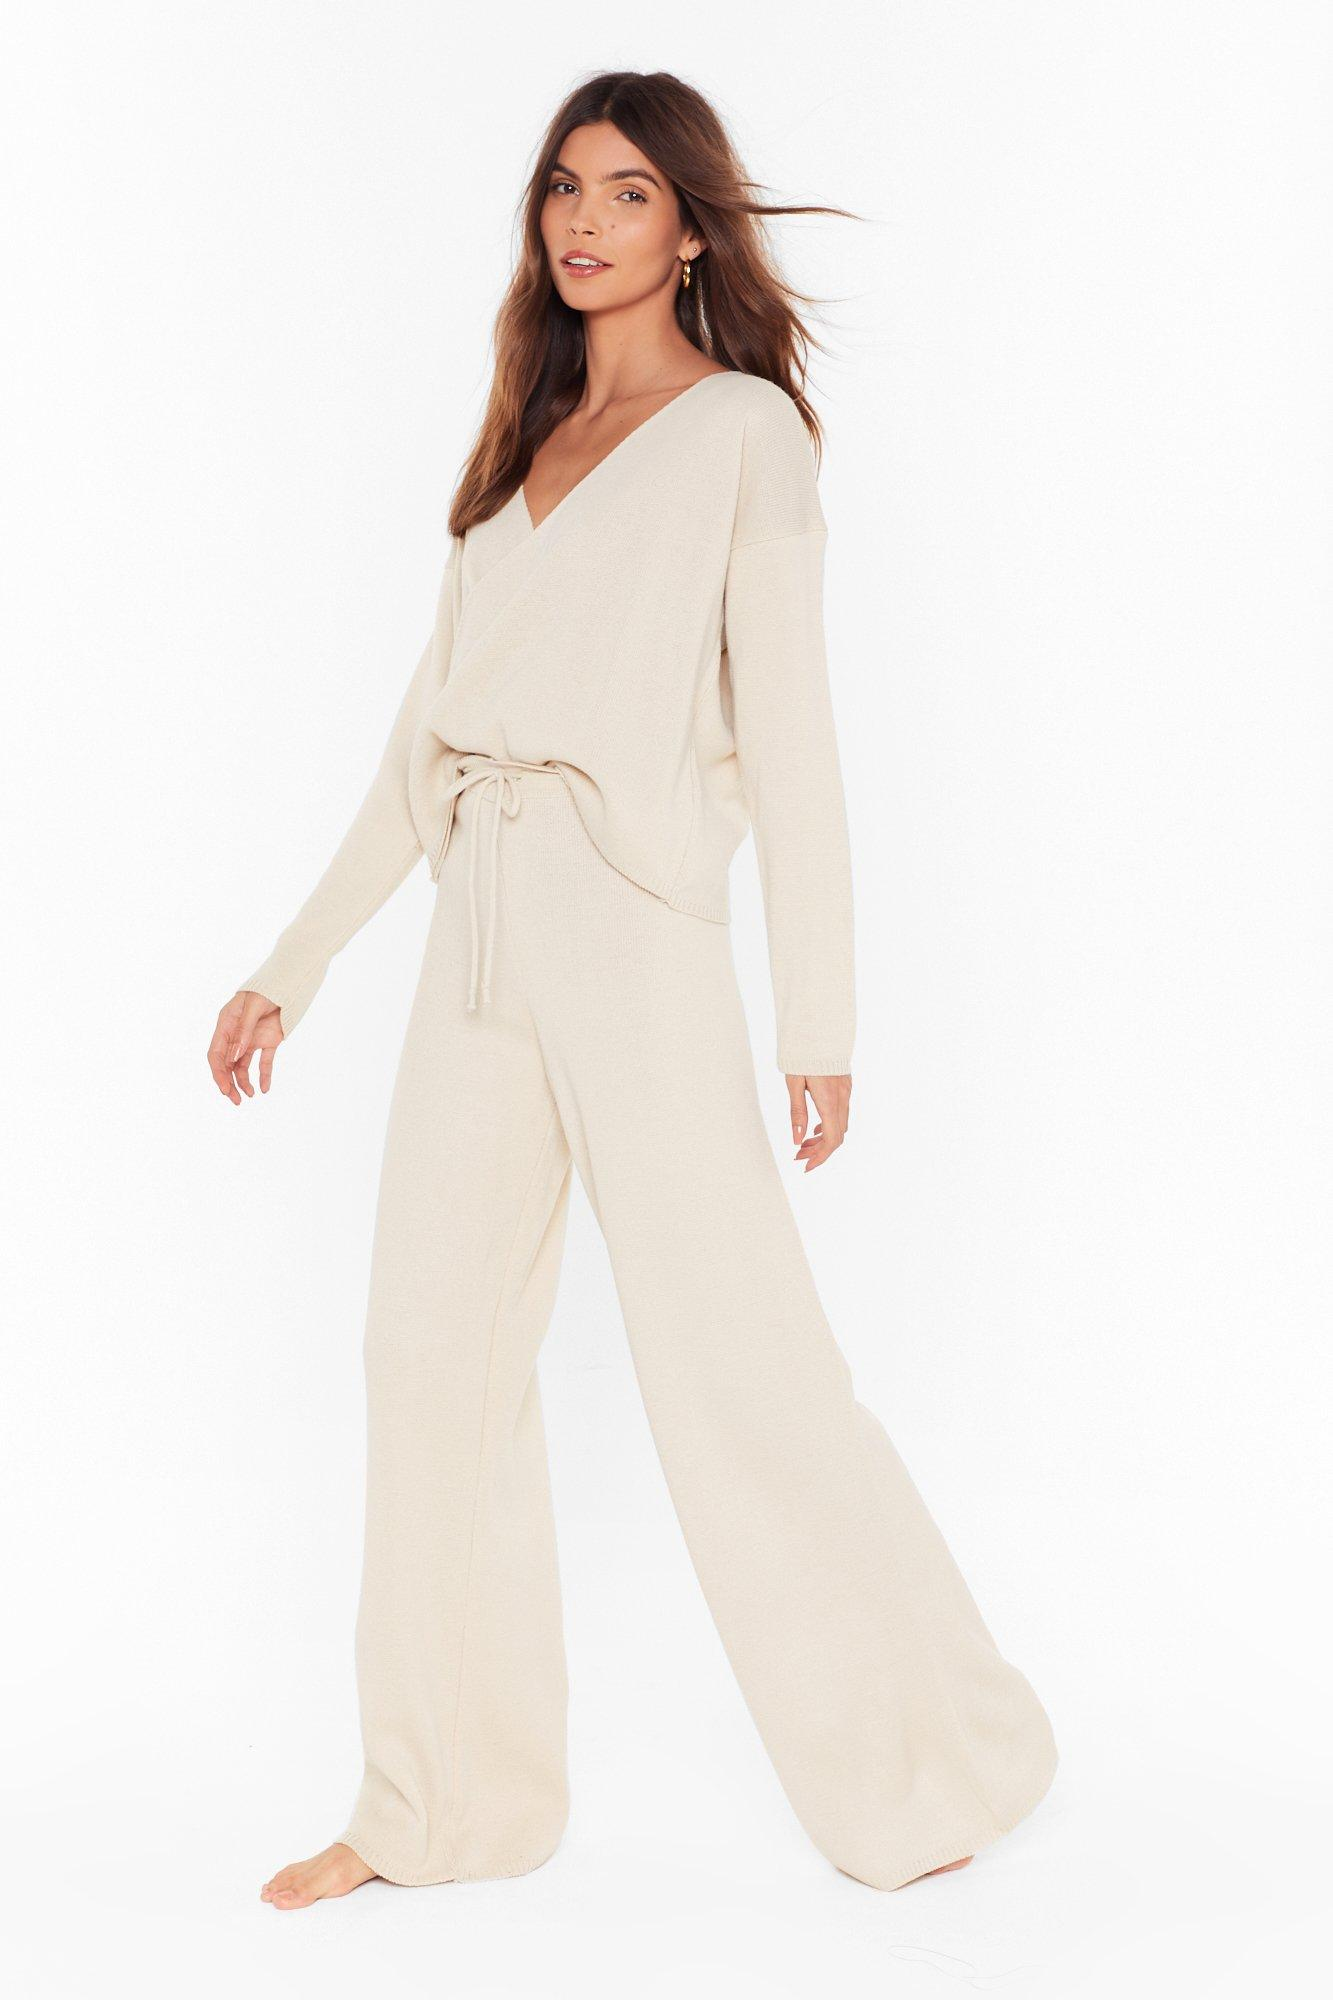 Knit's Time To Chill Wrap Sweater And Pants Set by Nasty Gal